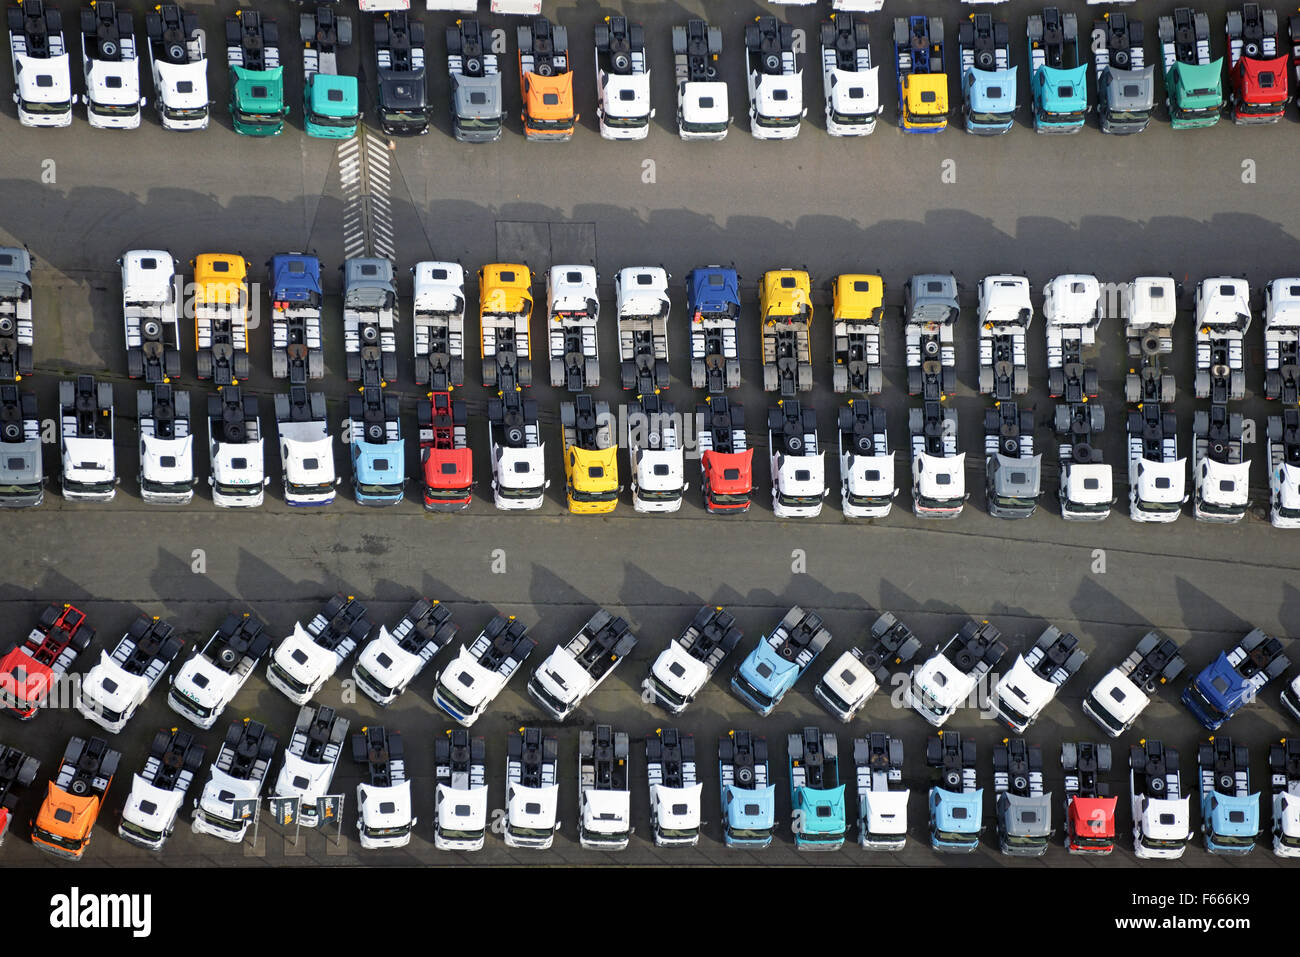 semi trailers for sale in germany david clark headset wiring diagram semitrailers stock photos images alamy parking hamburg image